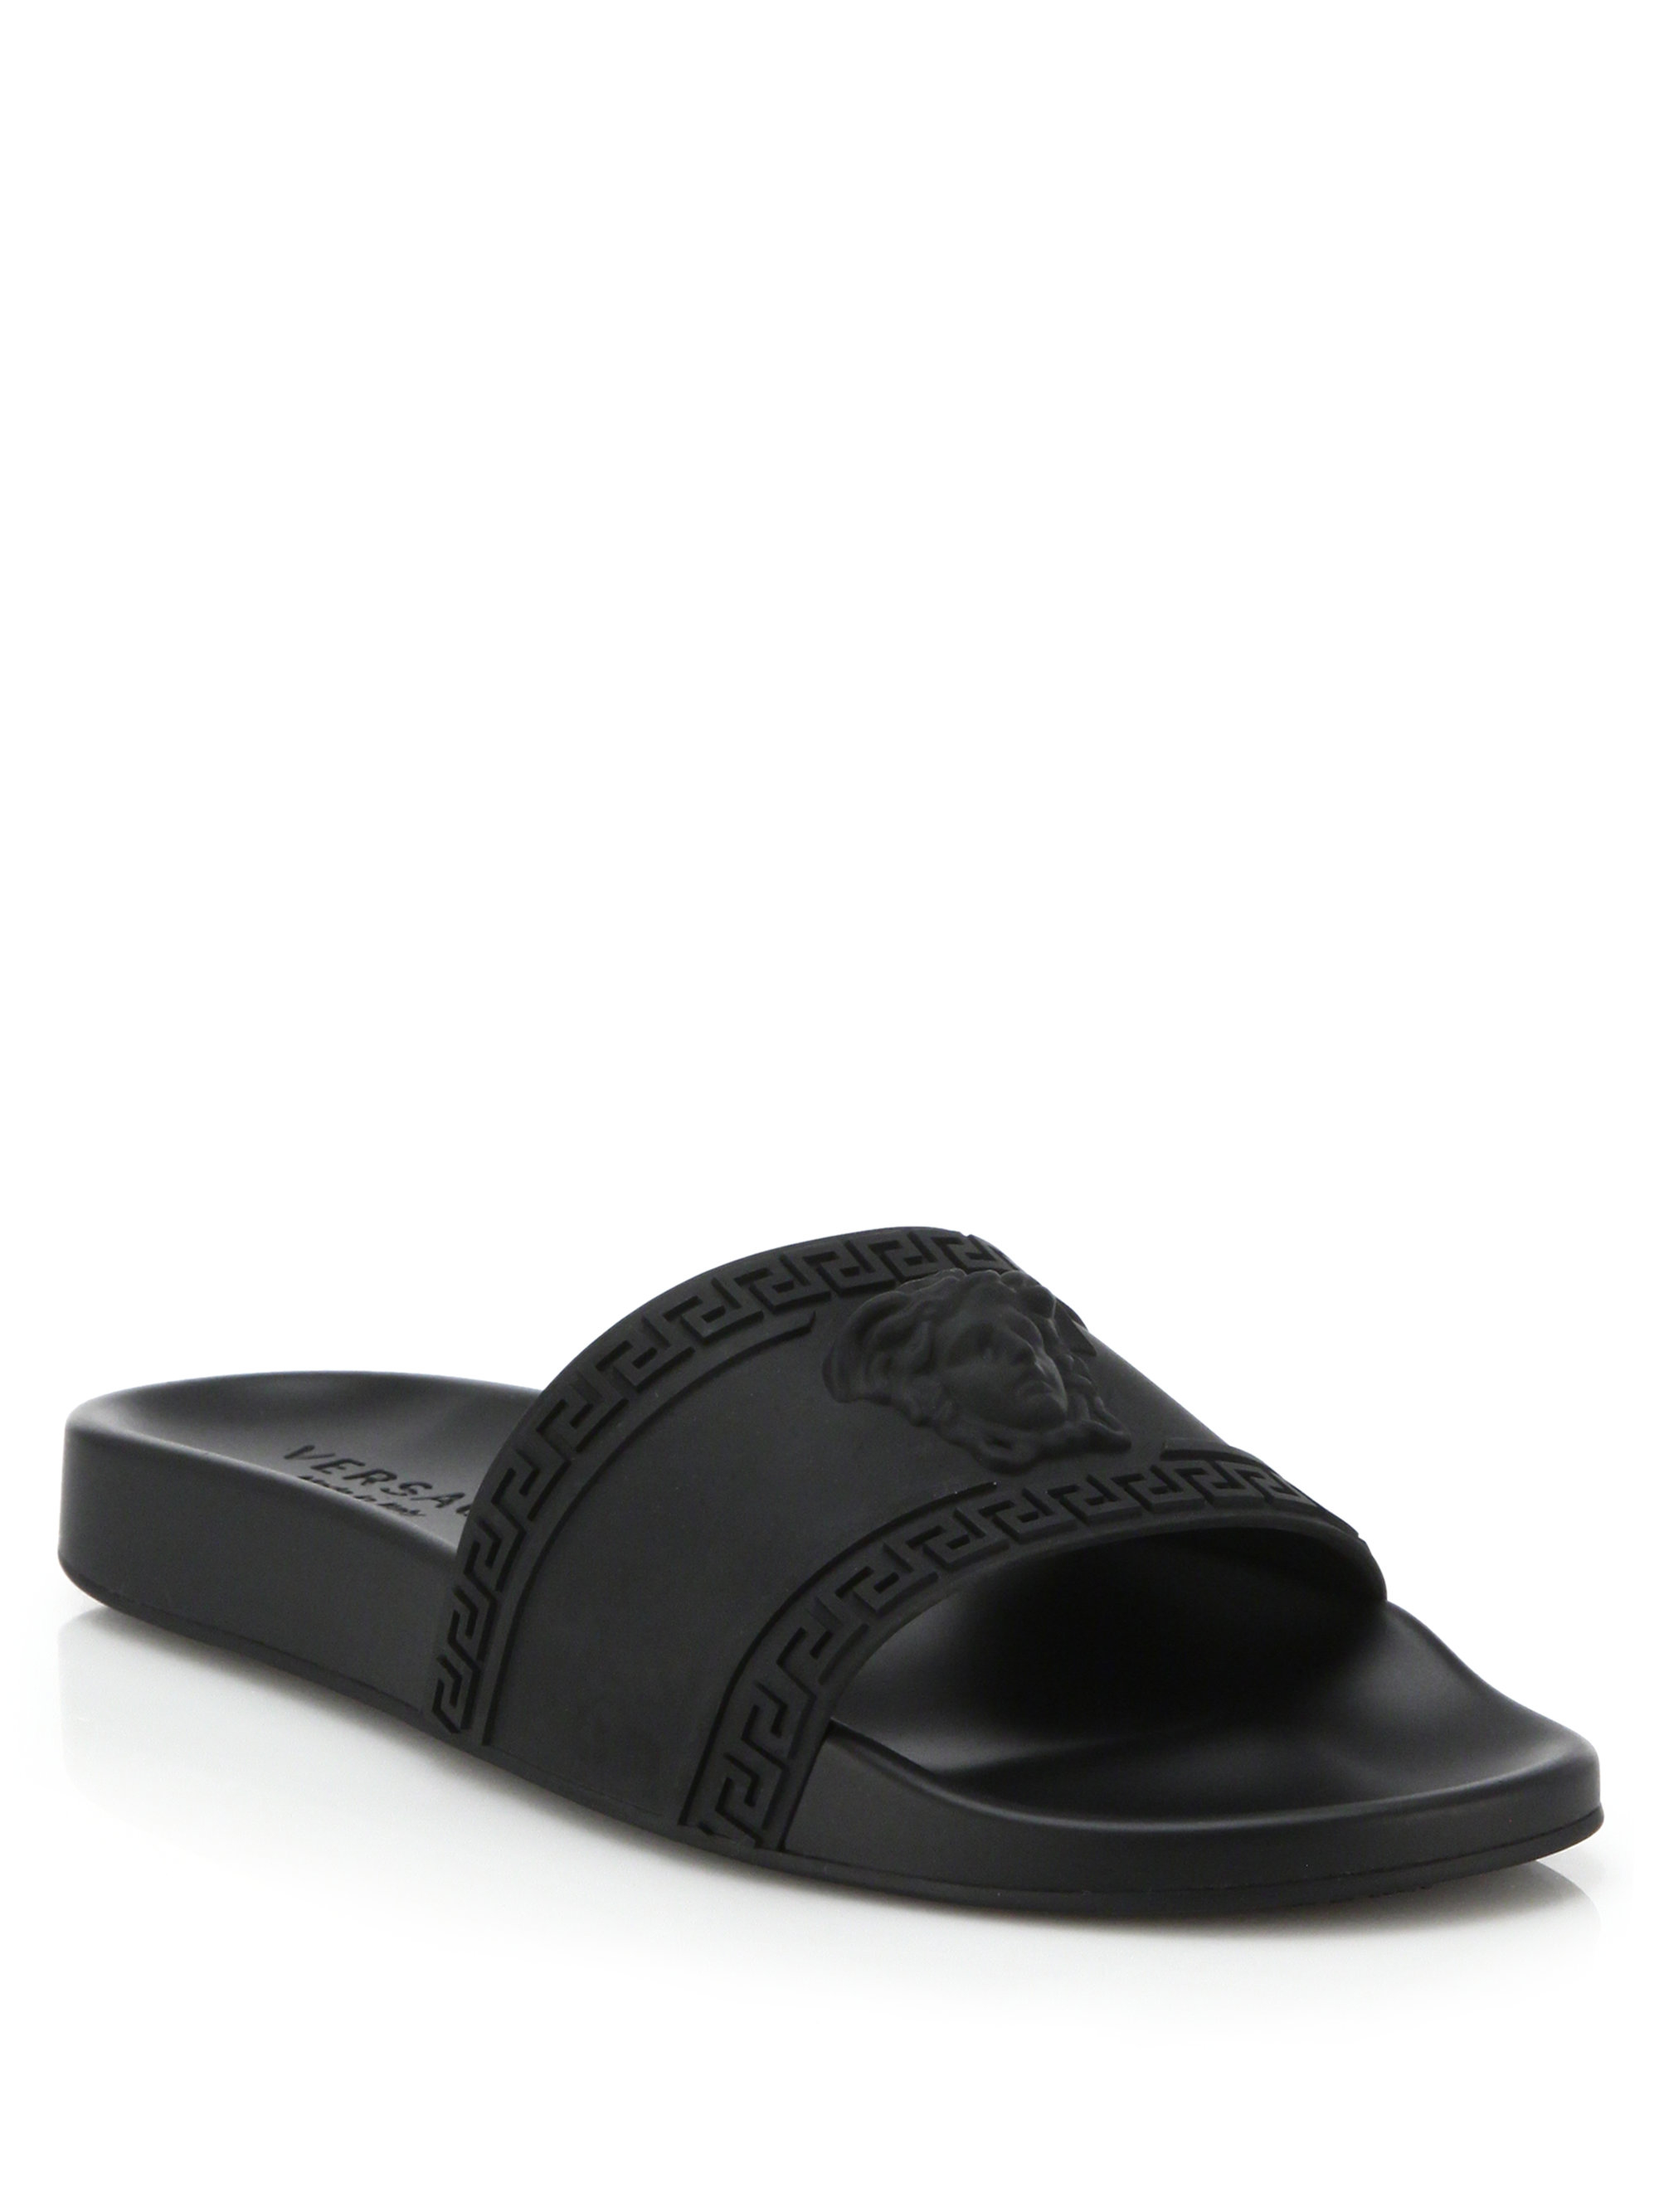 e76365eb1 versace men sandals - Serafini Pizzeria